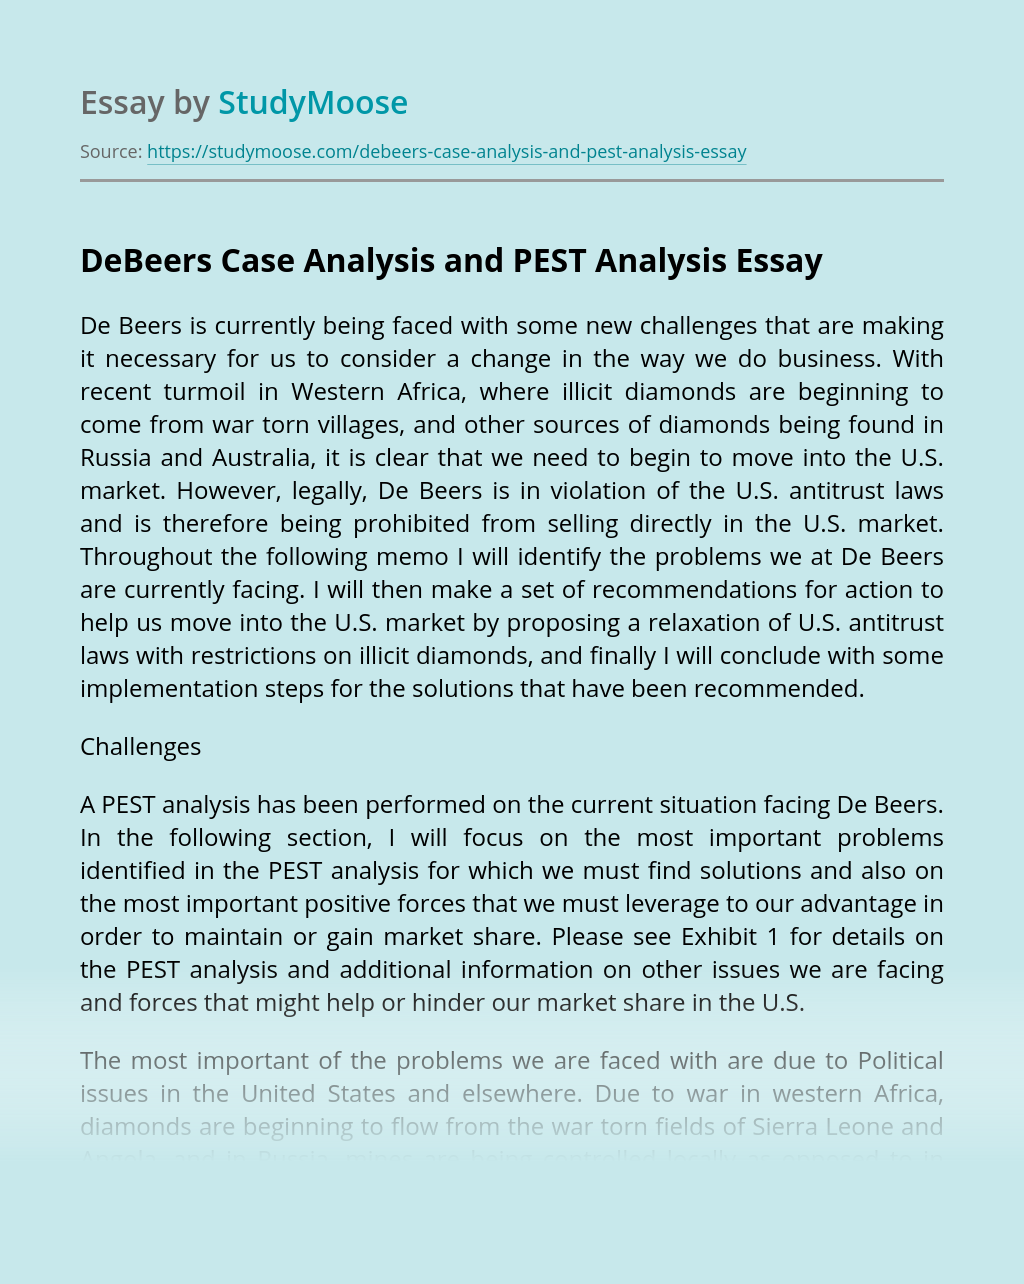 DeBeers Case Analysis and PEST Analysis